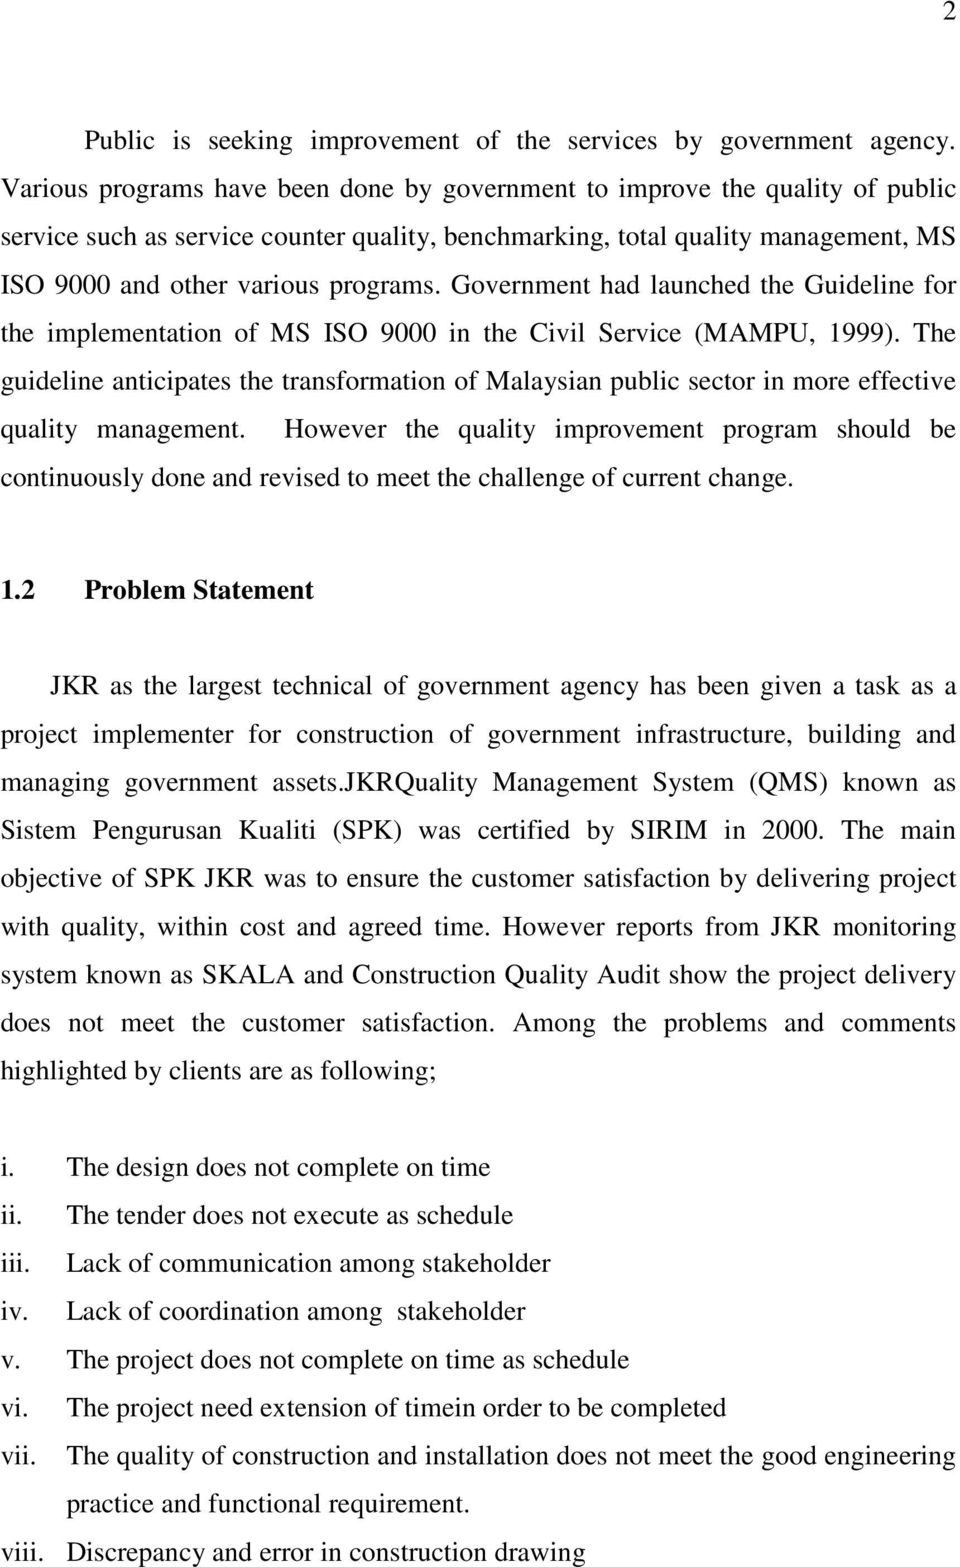 Government had launched the Guideline for the implementation of MS ISO 9000 in the Civil Service (MAMPU, 1999).